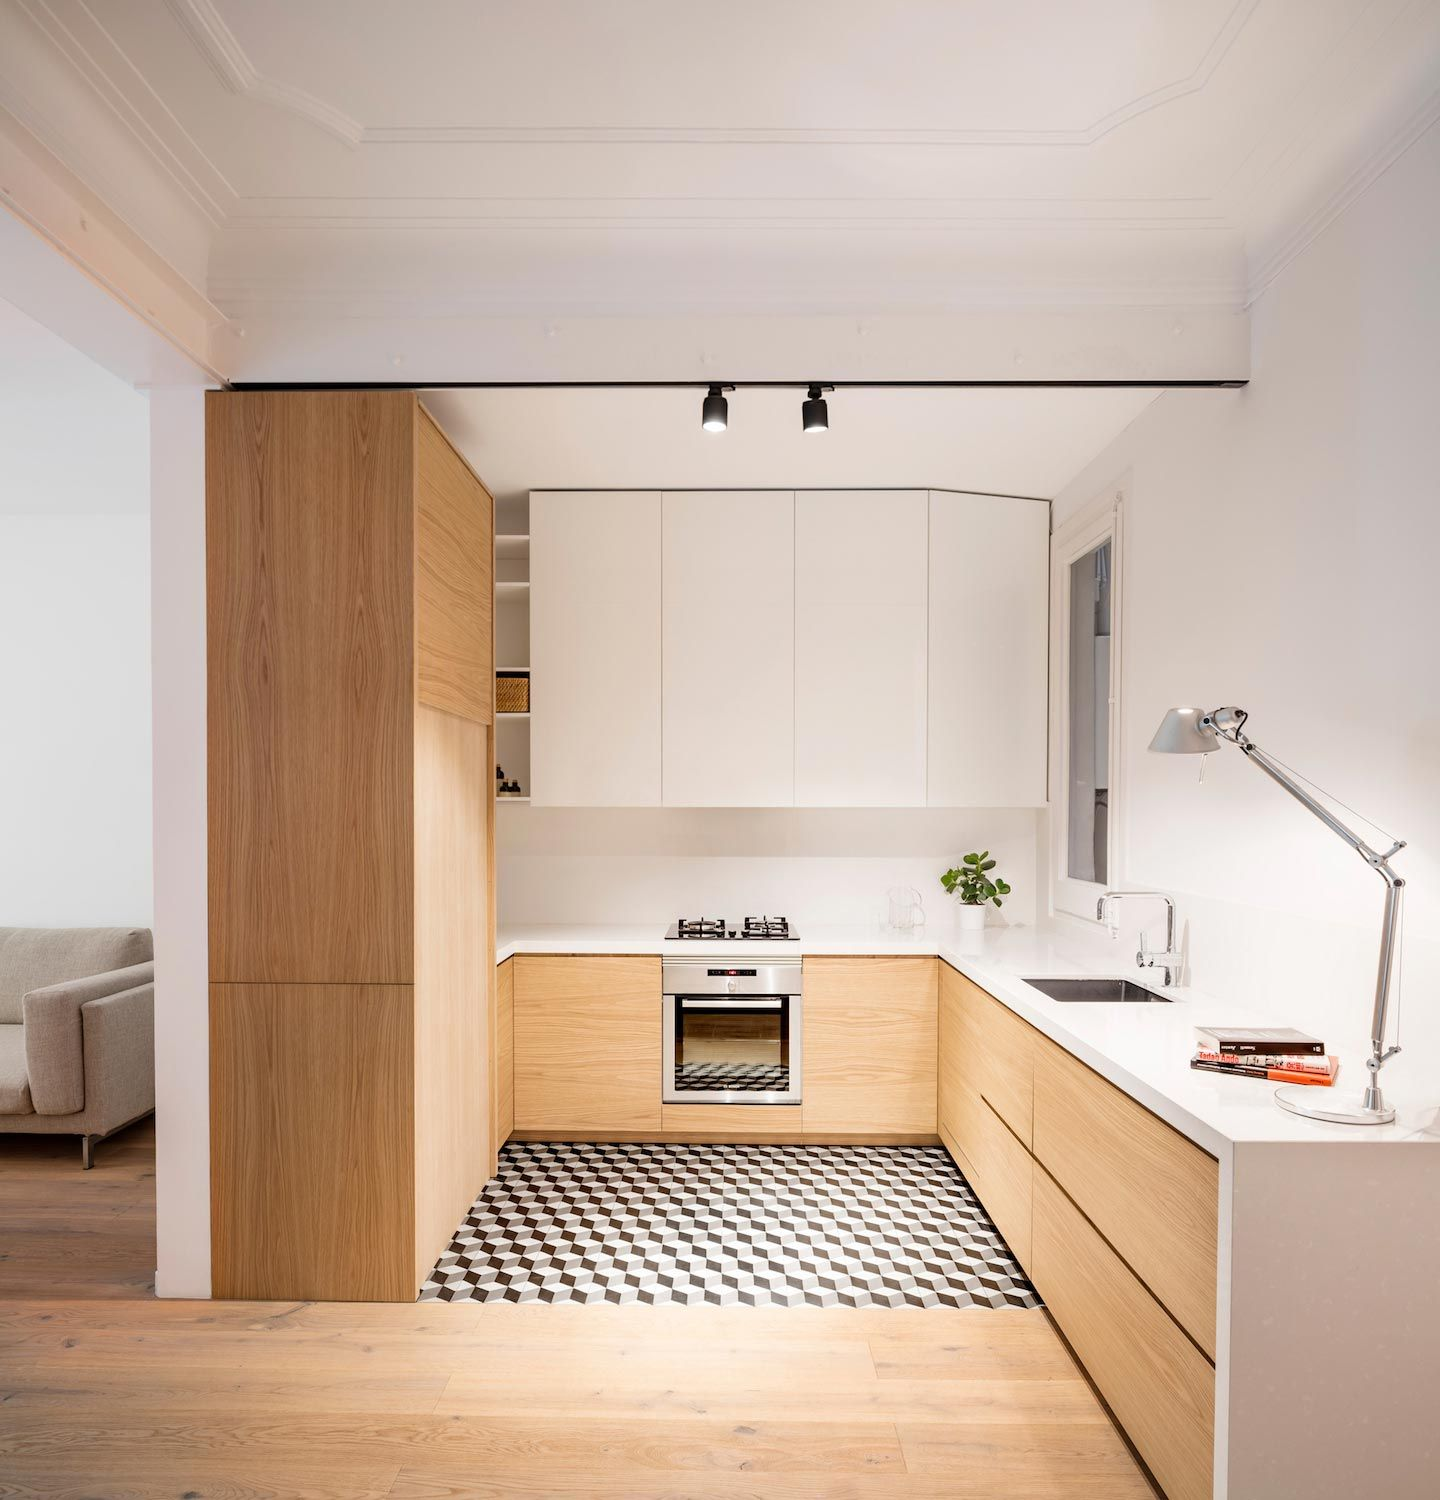 Apartment Define: Light Wood And White Define Alan's Apartment Renovation By